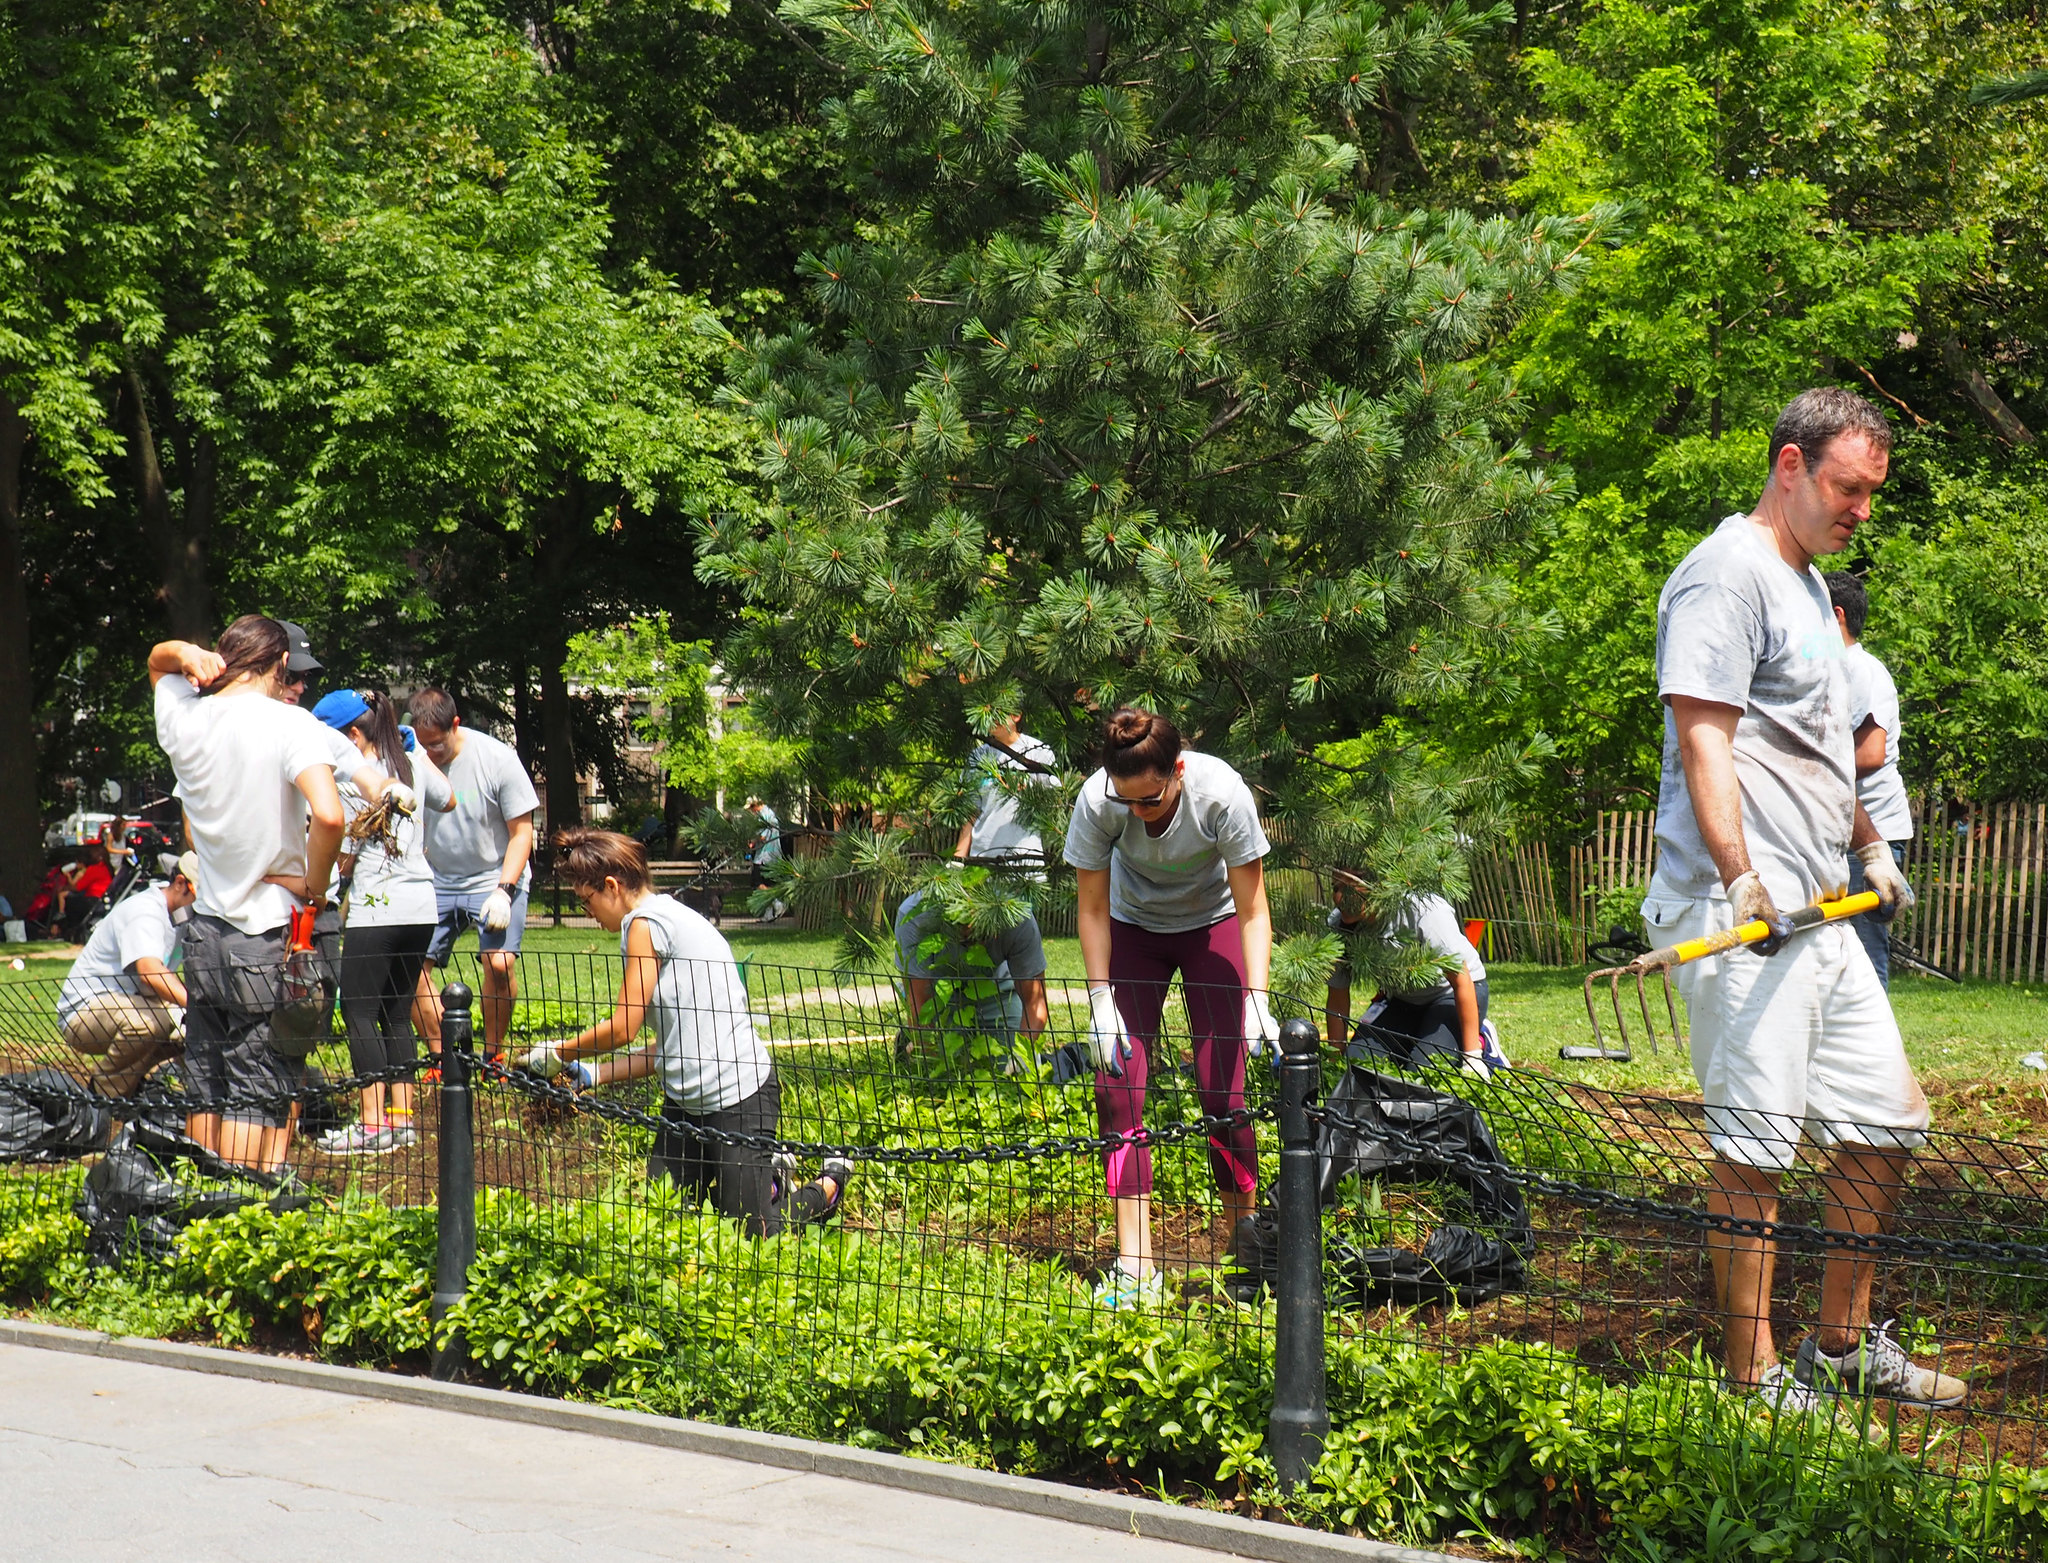 POSTPONED Volunteer at Washington Square Park — First monthly clean